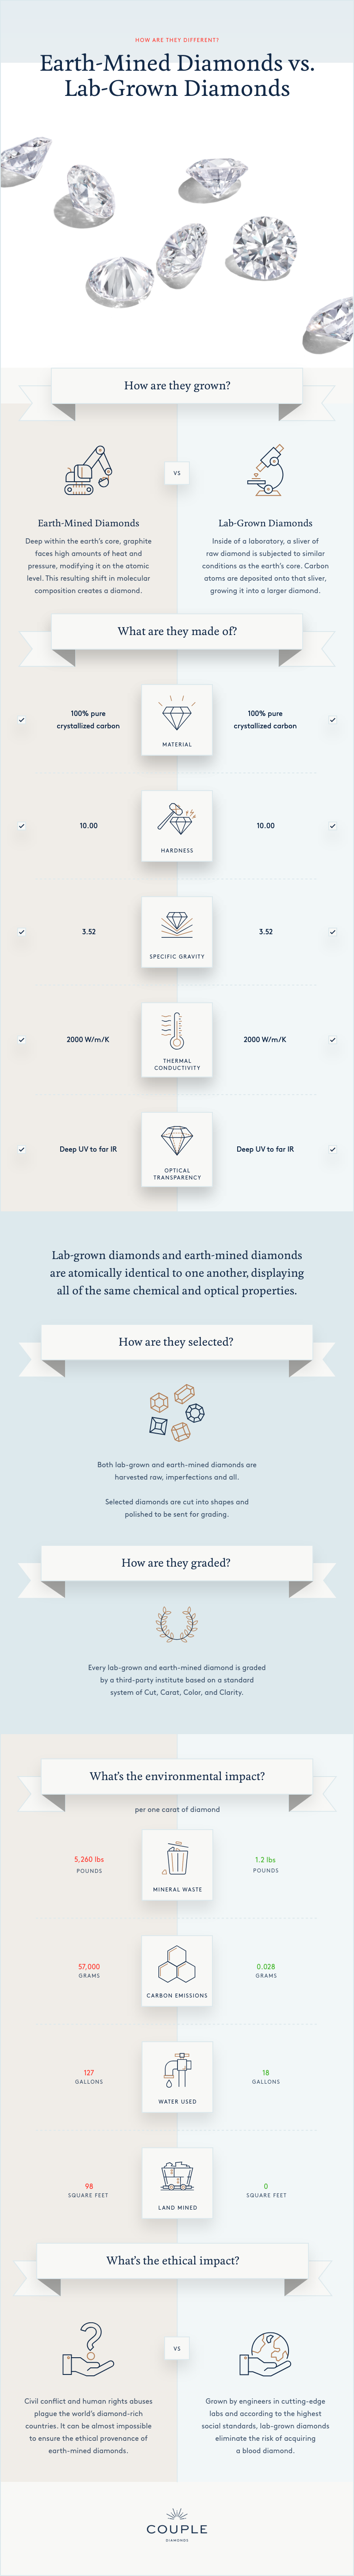 "How are they different? Earth-Mined Diamonds vs. Lab-Grown Diamonds -- How are they grown? EARTH-MINED DIAMONDS Deep within the earth's core, graphite faces high amounts of heat and pressure, modifying it on the atomic level. This resulting shift in molecular composition creates a diamond. LAB-GROWN DIAMONDS Inside of a laboratory, a sliver of  raw diamond is subjected to similar conditions as the earth's core. Carbon atoms are deposited onto that sliver, growing it into a larger diamond."" -- ""What are they made of? Earth-Mined and Lab-Grown Diamonds are atomically identical. MATERIAL: 100% pure crystallized carbon. HARDNESS: 10.00. SPECIFIC GRAVITY: 3.52. THERMAL CONDUCTIVITY: 2000 W/m/K. OPTICAL TRANSPARENCY: Deep ultraviolet to far infrared."" --  Lab-grown diamonds and earth-mined diamonds  are atomically identical to one another, displaying  all of the same chemical and optical properties. -- How are they selected? Both lab-grown and earth-mined diamonds are harvested raw, imperfections and all.   Selected diamonds are cut into shapes and polished to be sent for grading. How are they graded? Every lab-grown and earth-mined diamond is graded  by a third-party institute based on a standard system of Cut, Carat, Color, and Clarity."" -- ""What's the environmental impact? PER ONE CARAT OF DIAMOND. Mineral Waste: 5,260 POUNDS earth-mined diamonds; 1.2 POUNDS lab-grown diamonds. Carbon Emissions: 57,000 GRAMS earth-mined diamonds; 0.028 GRAMS lab-grown diamonds. Water Used: 127 GALLONS earth-mined diamonds; 18 GALLONS lab-grown diamonds. Land Mined: 98 SQUARE FEET earth-mined diamonds; 0 SQUARE FEET, lab-grown diamonds.""  -- What's the ethical impact? EARTH-MINED DIAMONDS: Civil conflict and human rights abuses plague the world's diamond-rich countries. It can be almost impossible to ensure the ethical provenance of earth-mined diamonds. LAB-GROWN DIAMONDS: Grown by engineers in cutting-edge labs and according to the highest social standards, lab-grown diamonds eliminate the risk of acquiring a blood diamond."""